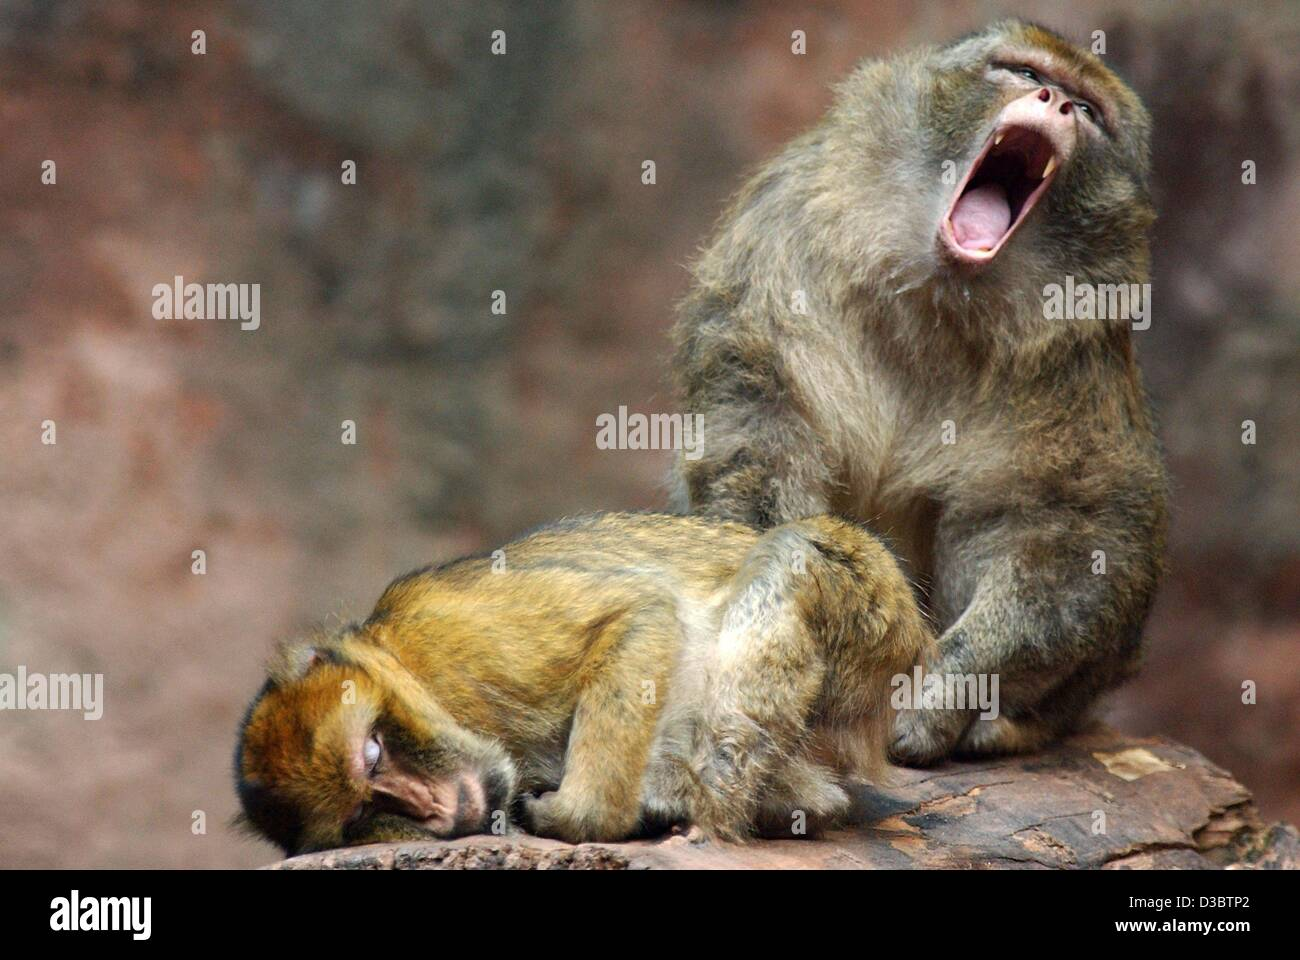 (dpa) - A male barbary macaque yawns while his female partner is still sleeping at his feet, in the zoo in Nuremberg, - Stock Image